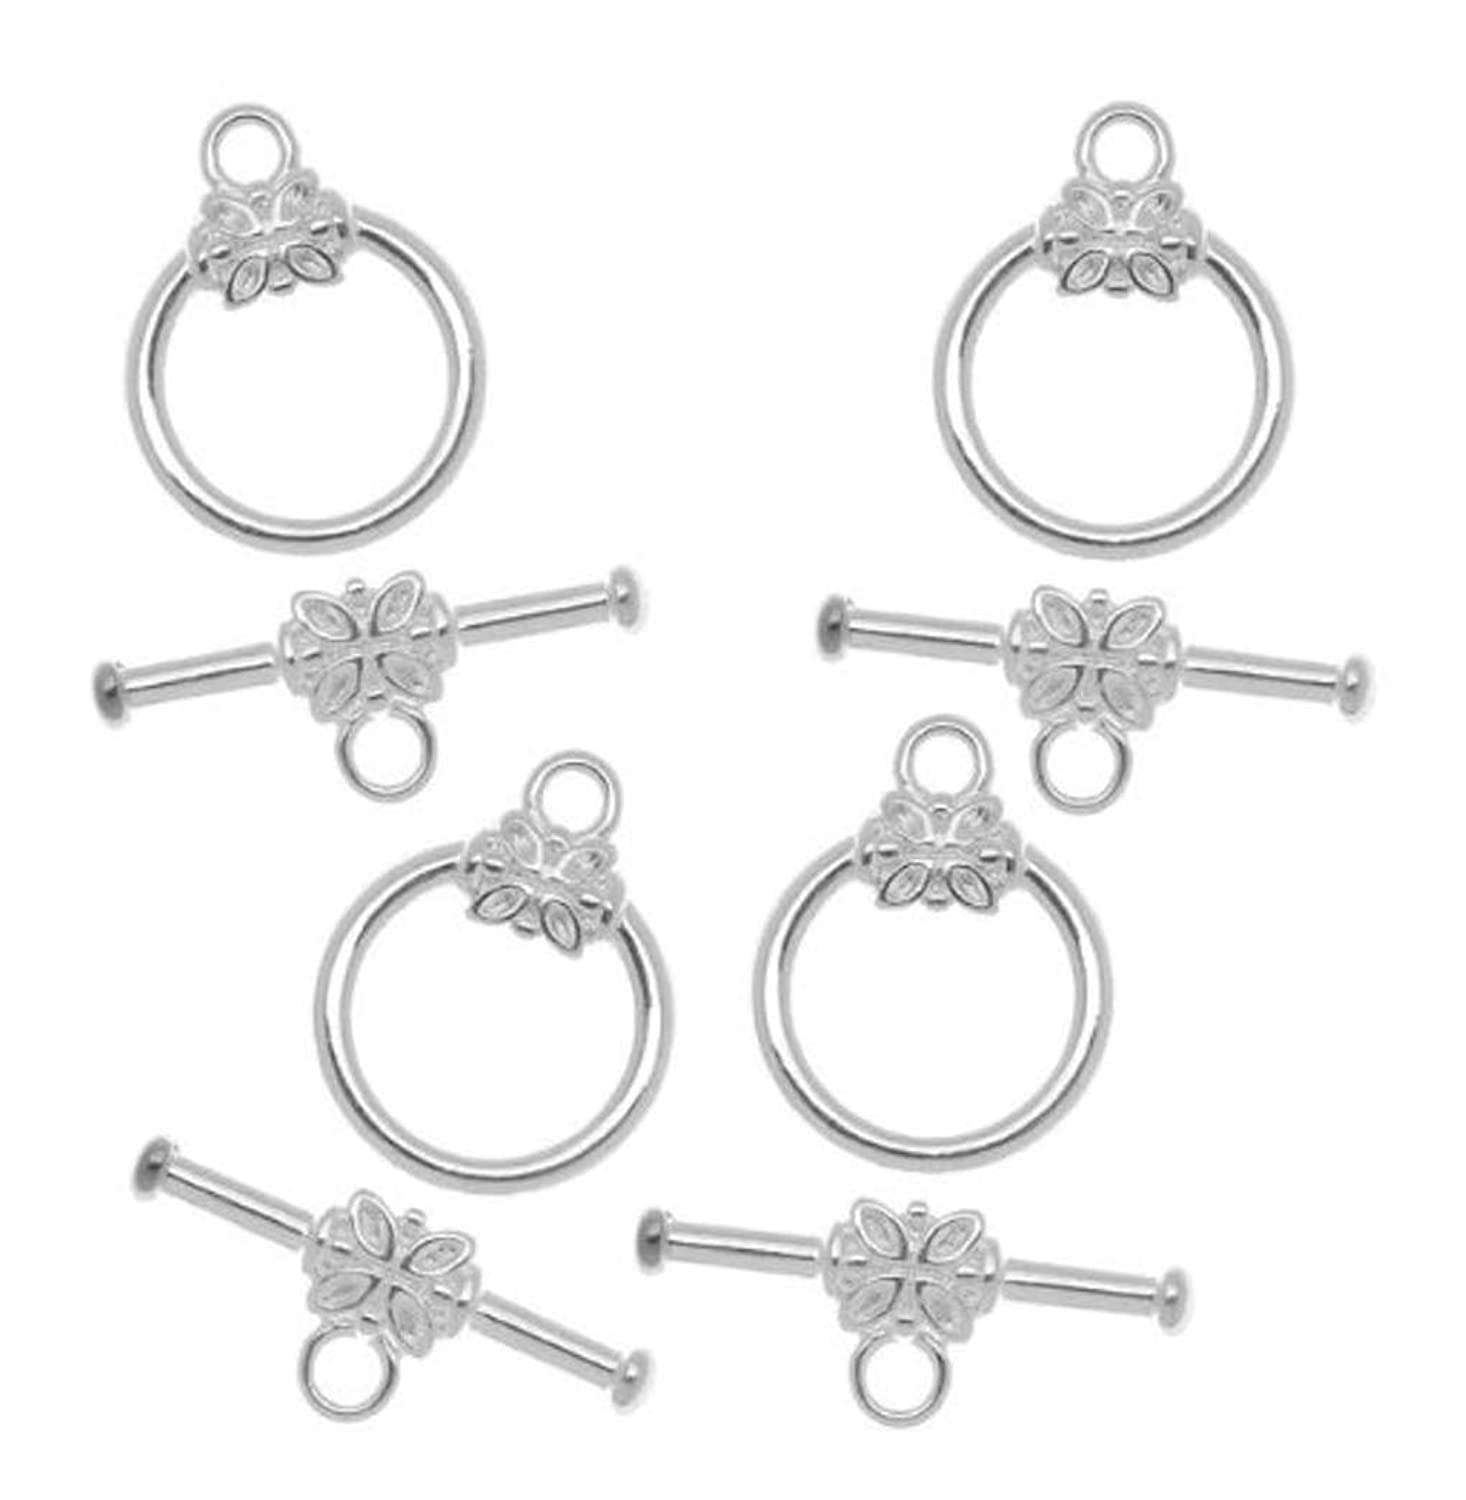 2 sets Sterling Silver Flower Toggle Clasps 15mm Connector Beads for Jewelry Craft Making SS356